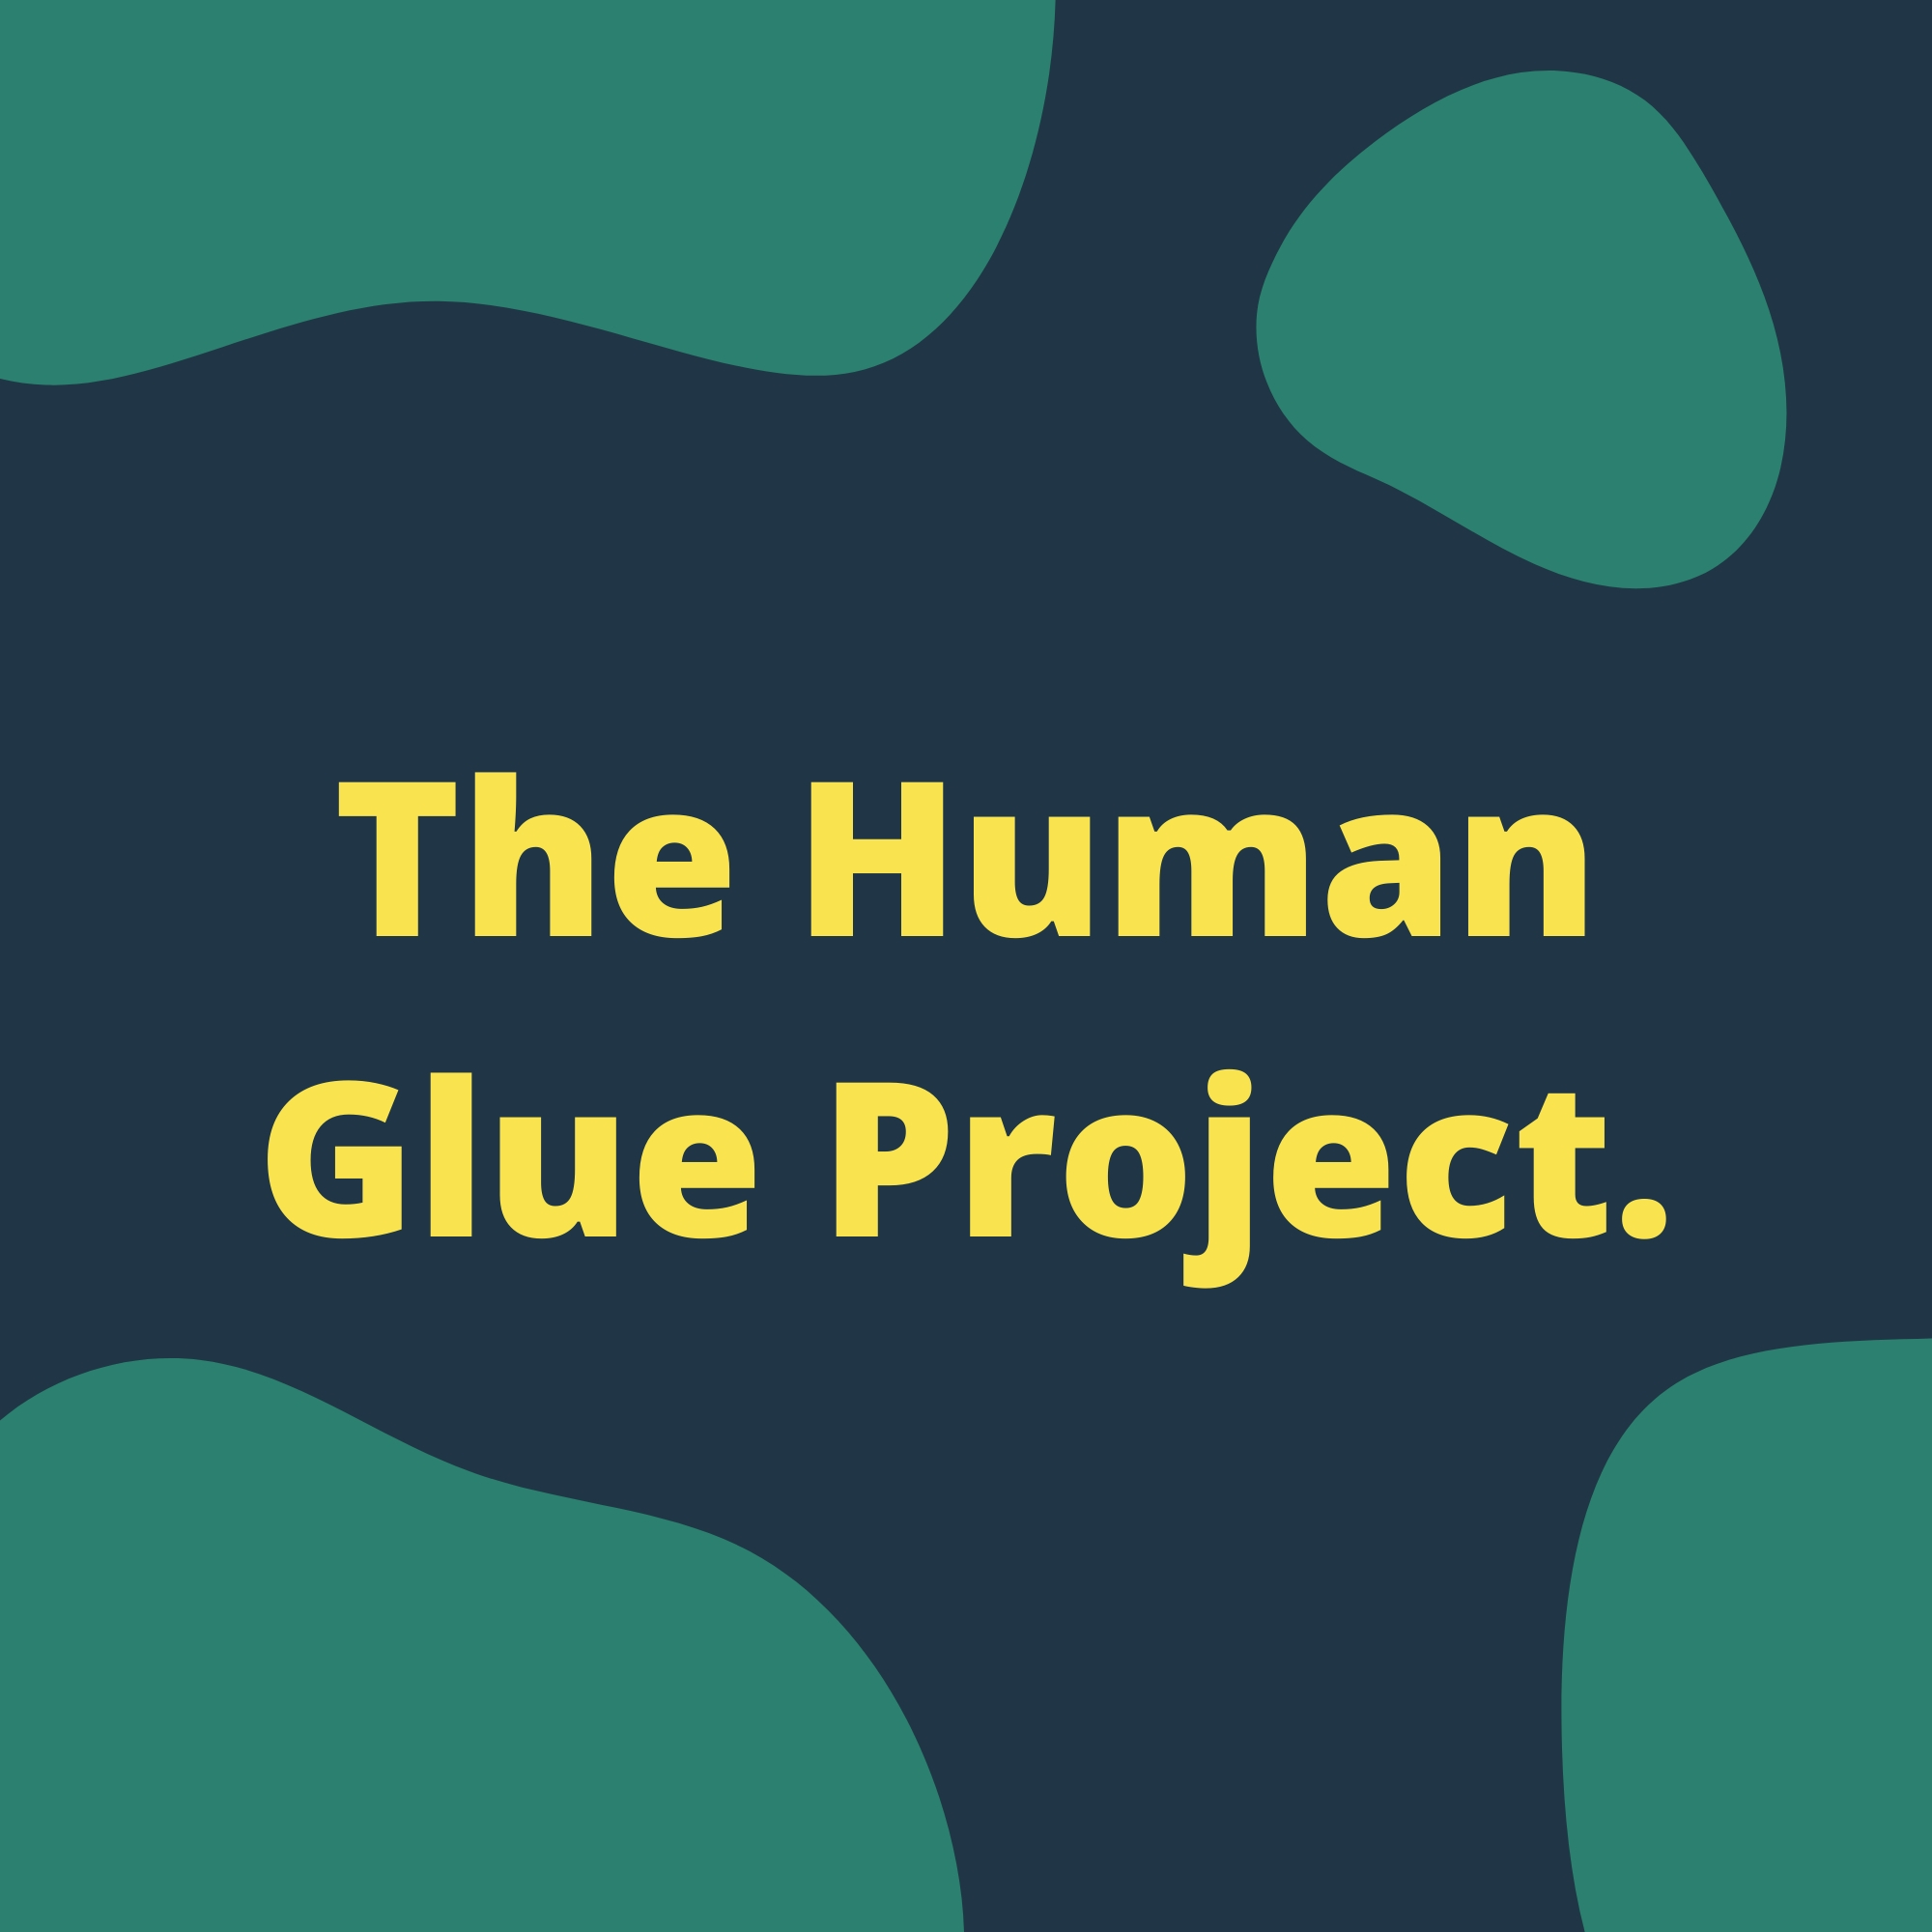 The Human Glue Project